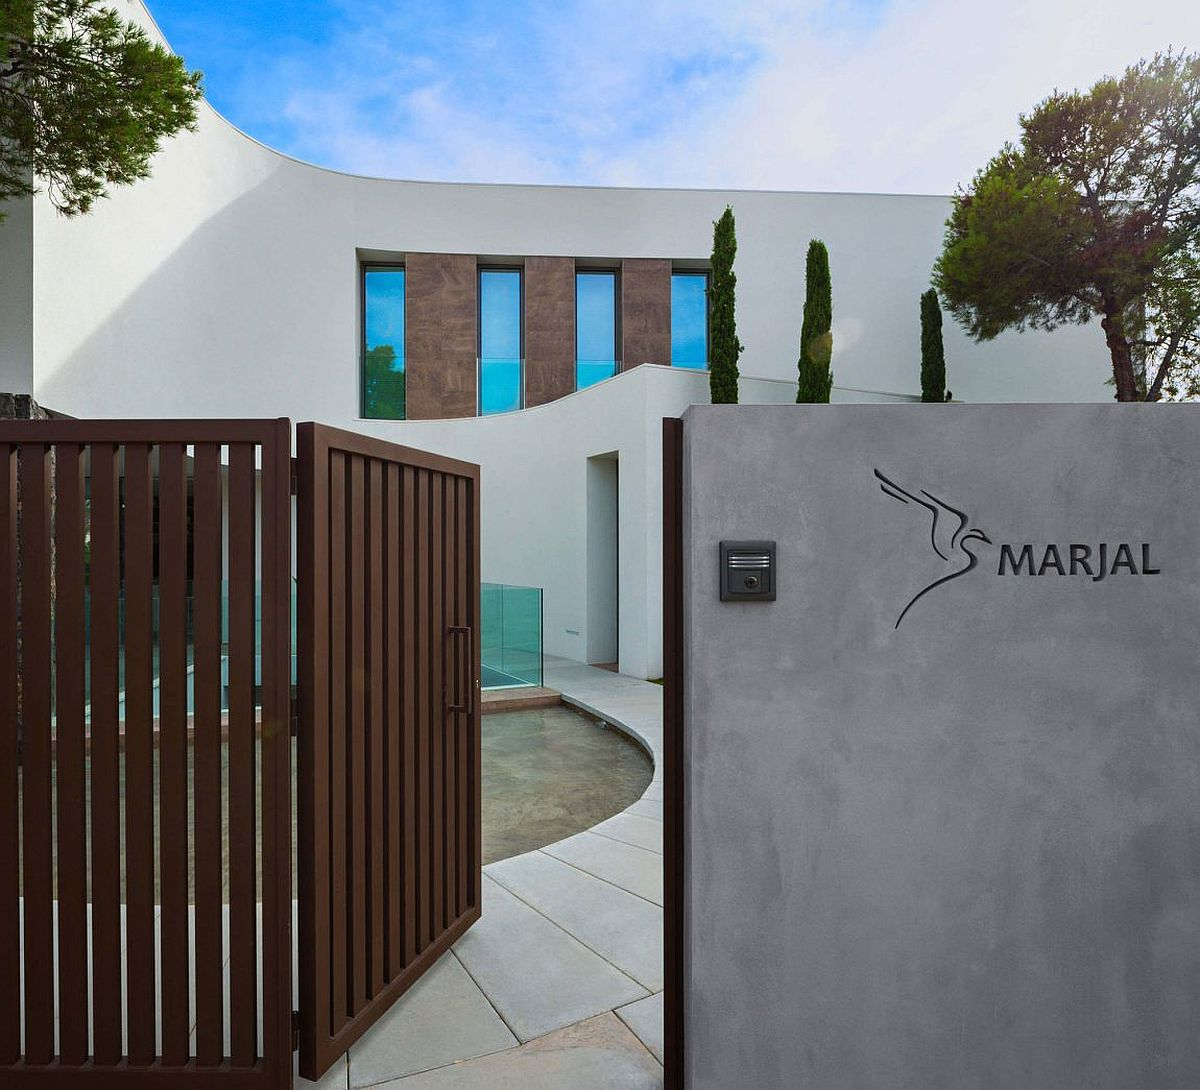 Entrance to the delightful Spanish home with relaxing contemporary style in Finestrat